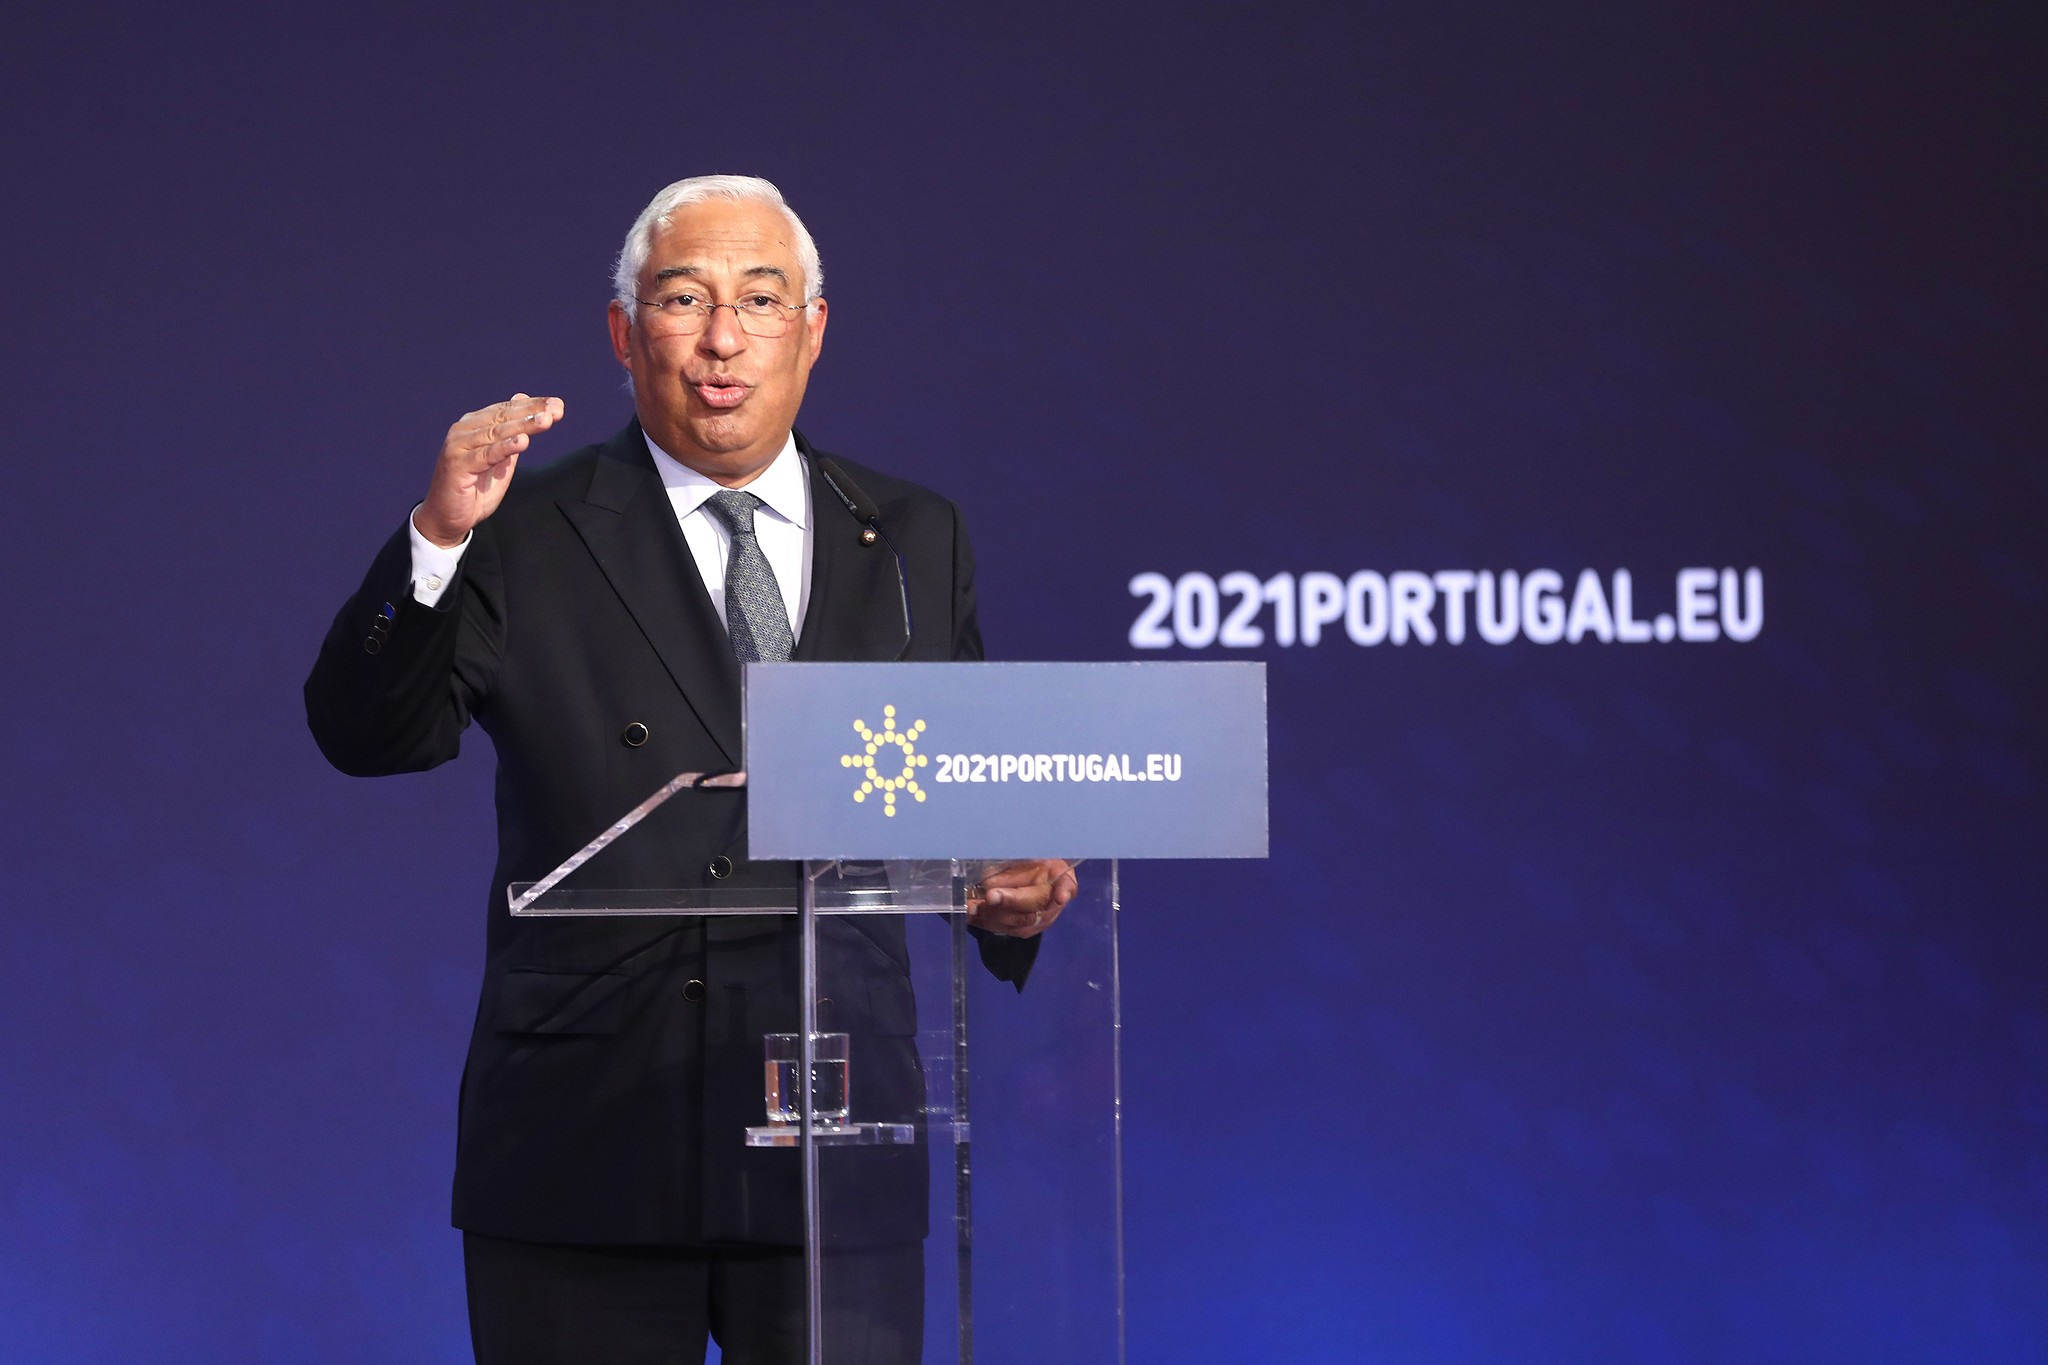 Portugal's left wing coalition government is delivering stability and growth